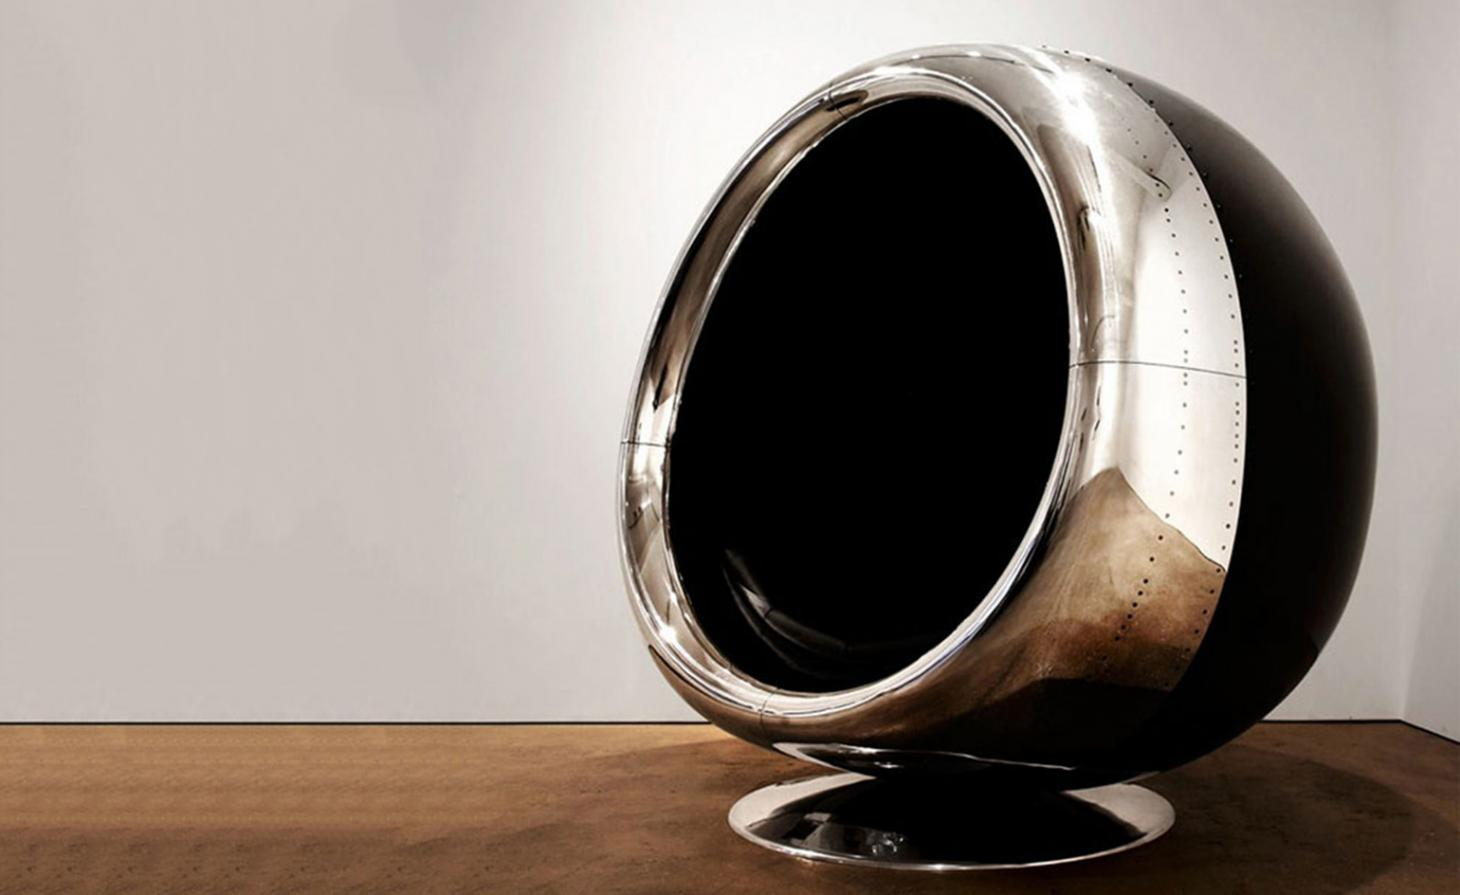 Flight of fancy: the Tucker Brothers release 737 Cowling Chair